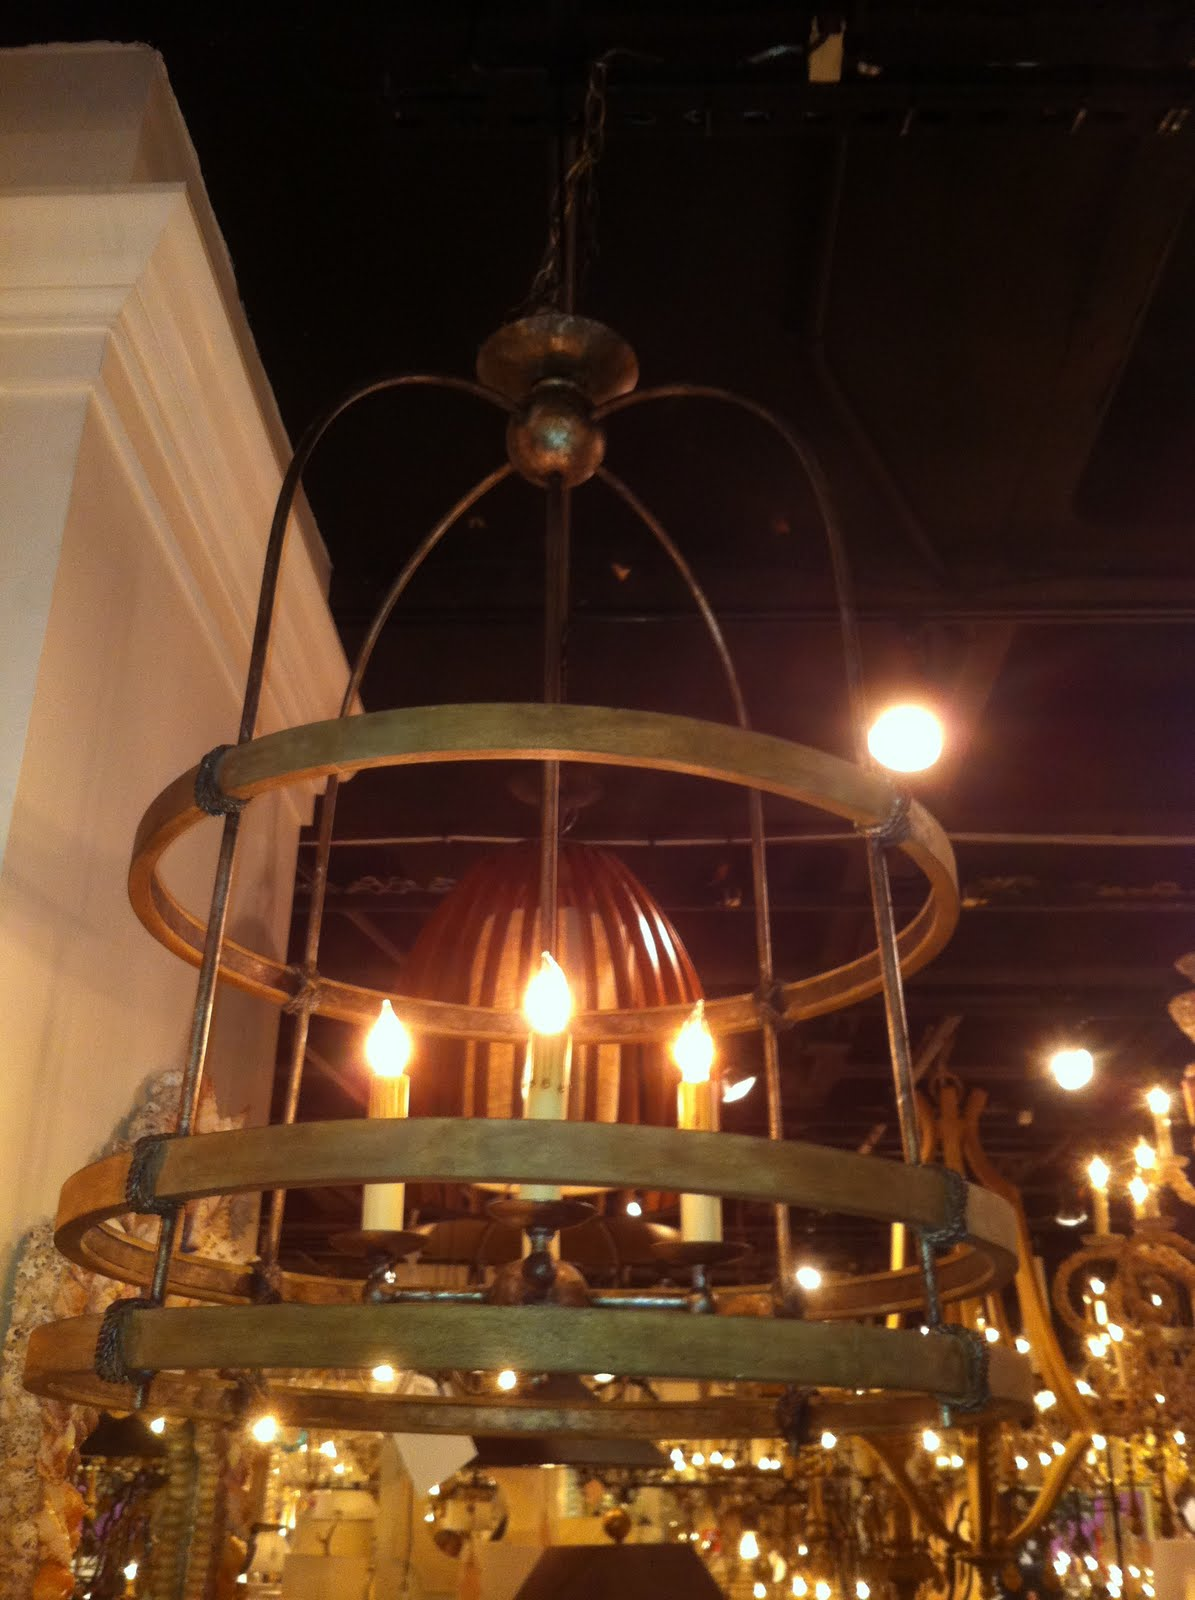 What Would You Call This Style Lantern Chandelier It Was Very Rustic Like Pieces From An Old Oak Barrel Which Is Why My First Thought Use In